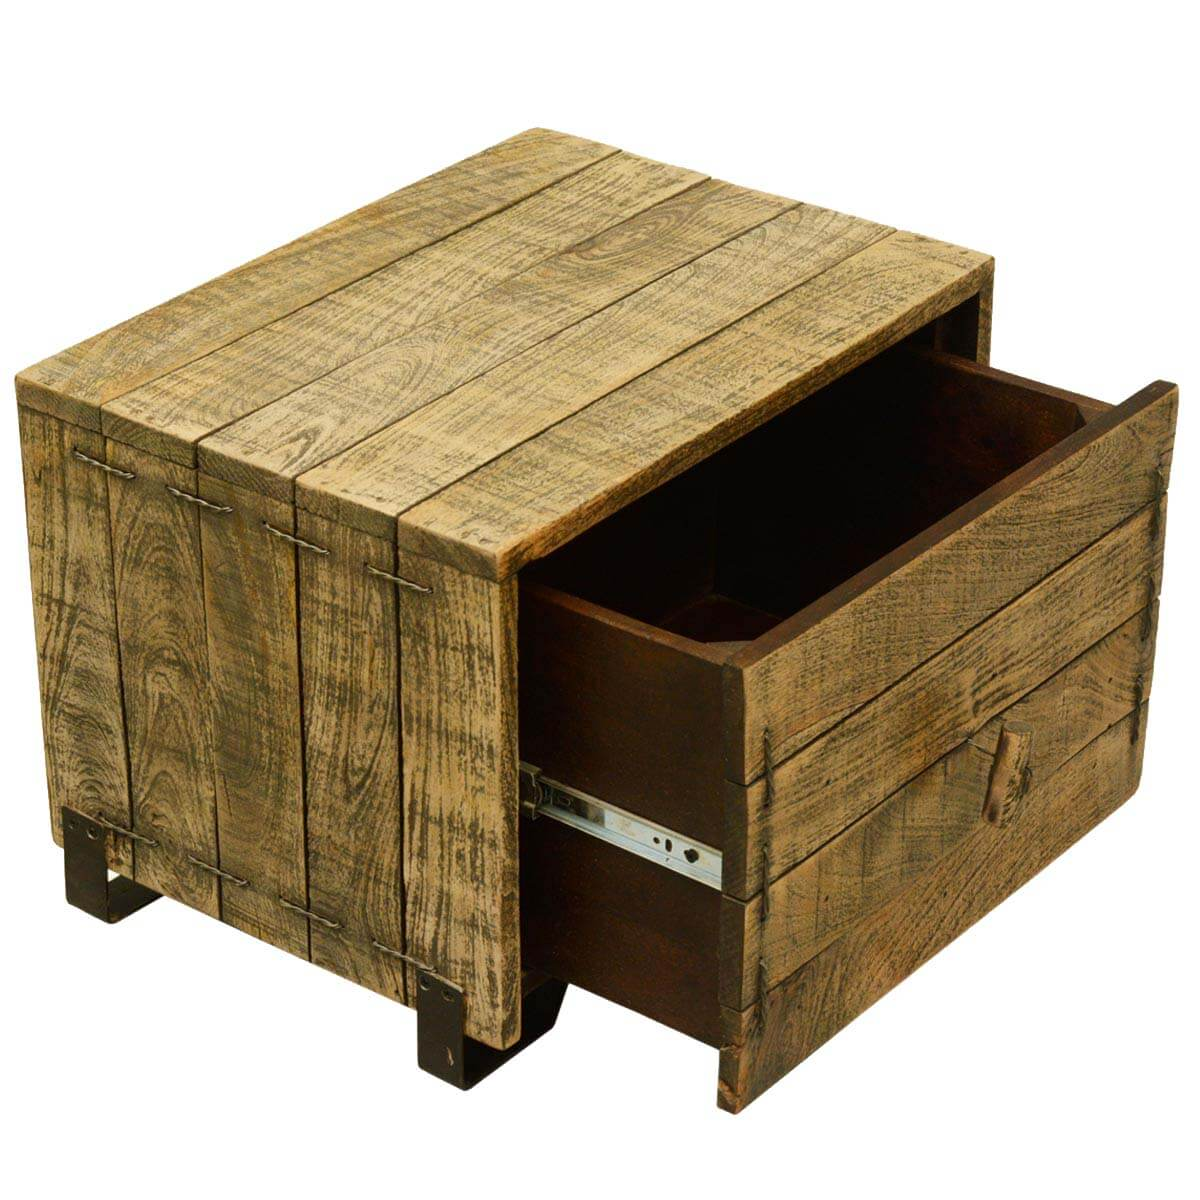 Wood Cube End Table Rustic Simplicity Reclaimed Wood End Table Cube W Drawer